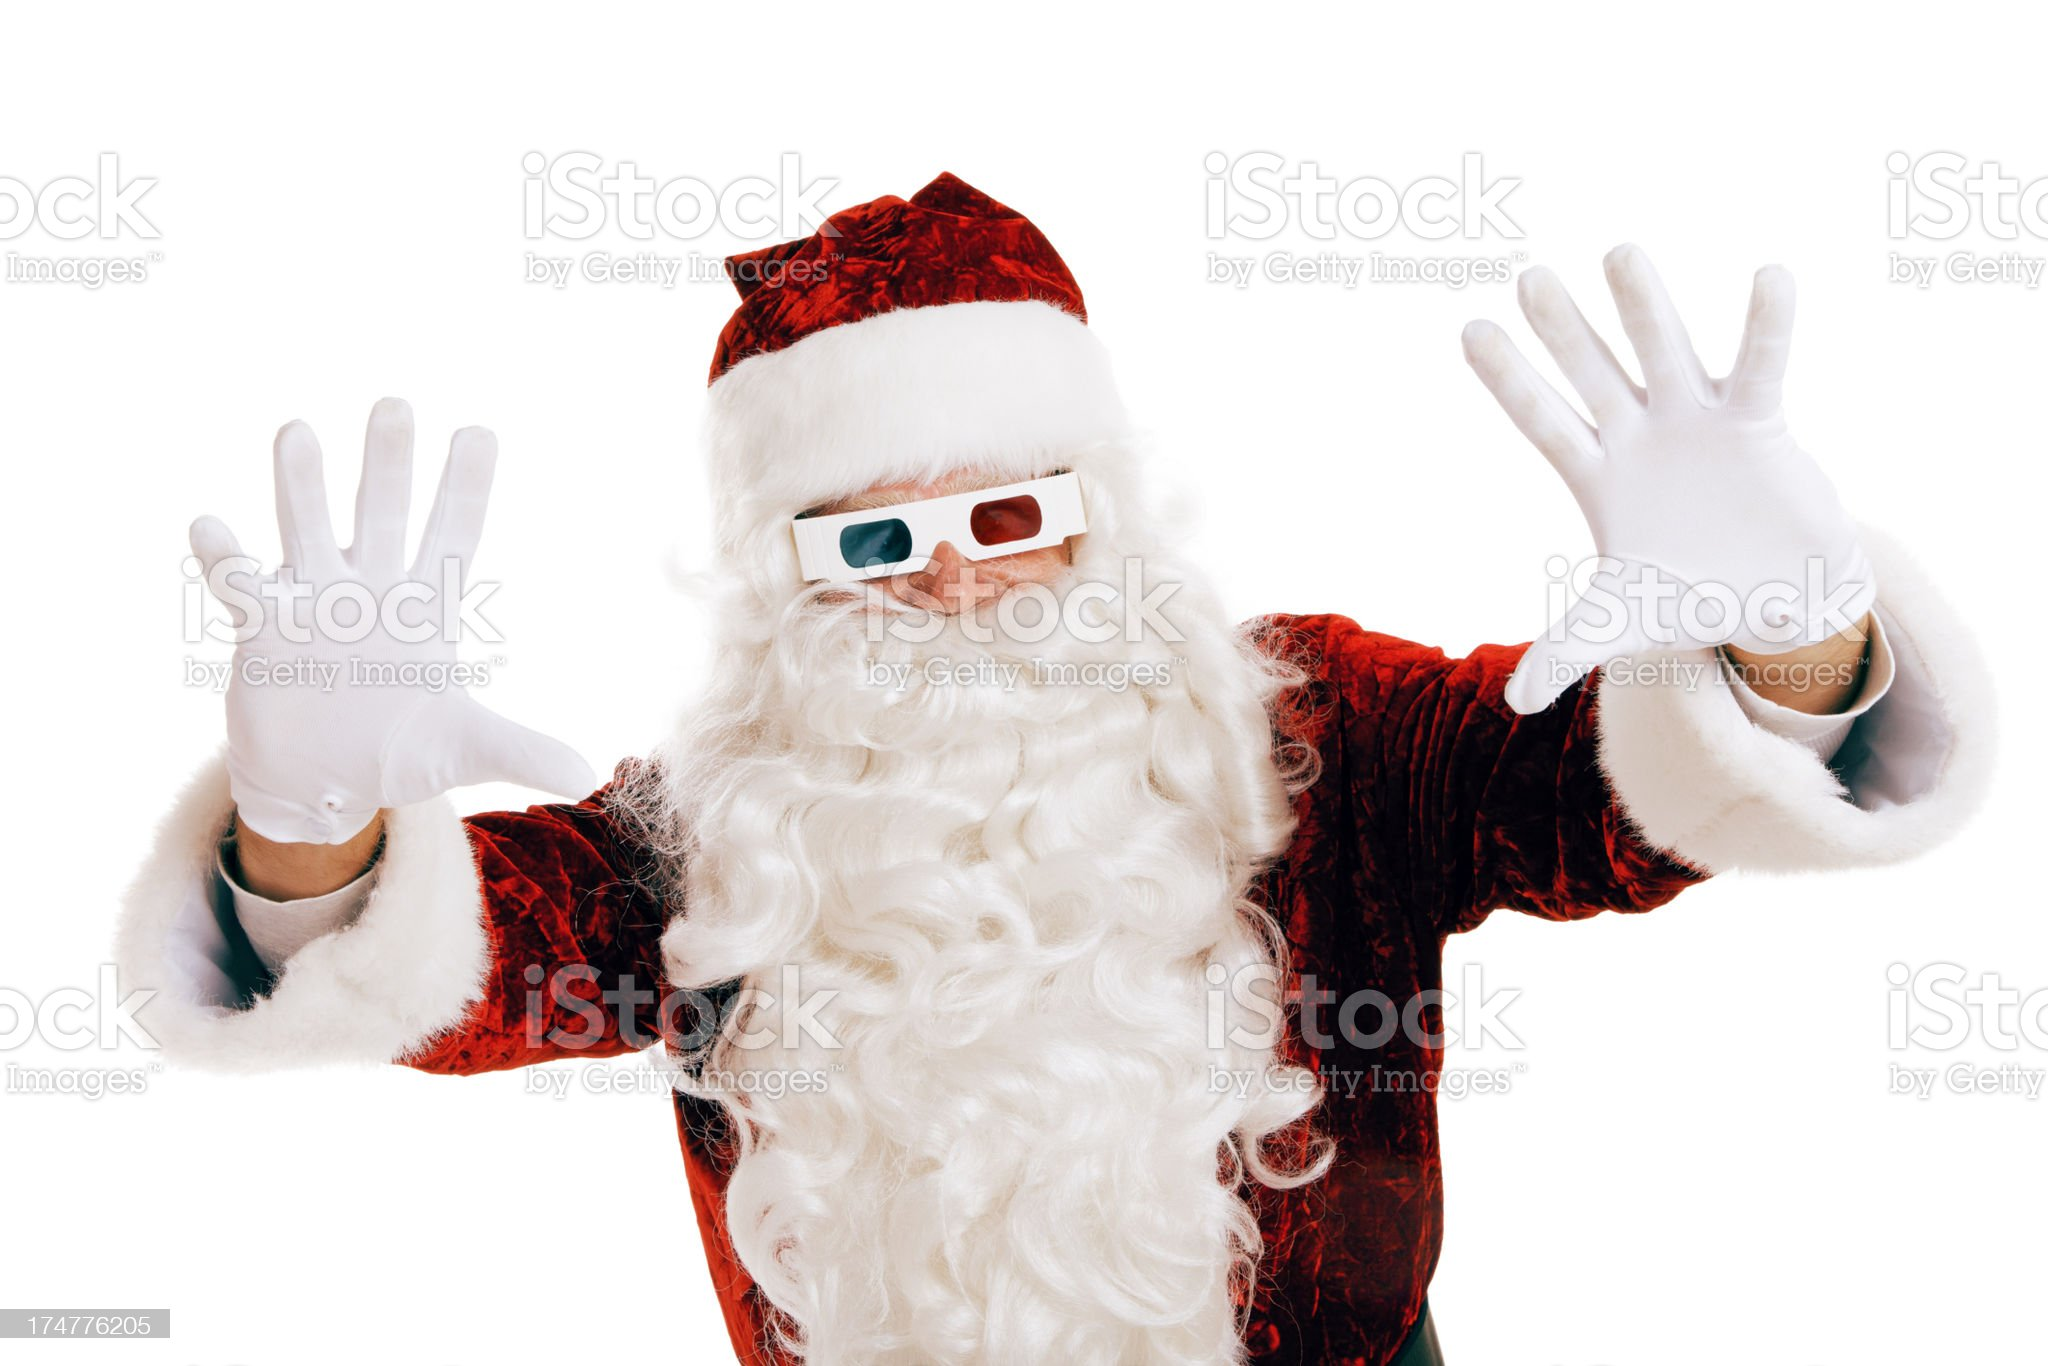 3-D Glasses on Santa Claus royalty-free stock photo